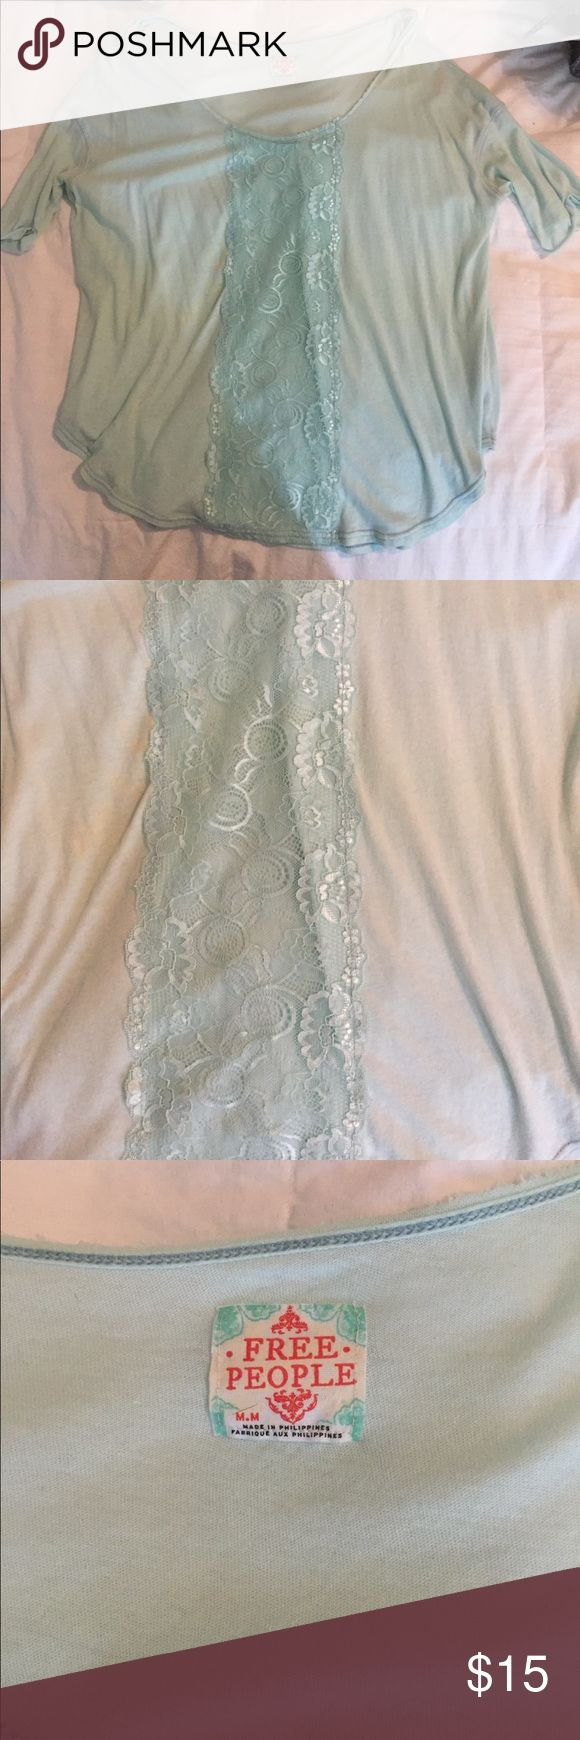 Free people Mint green/turquoise tee Flowy & comfortable. Can be worn off shoulder, tie it on side. Cute lace detailing down front. Like brand new Tops Tees - Short Sleeve